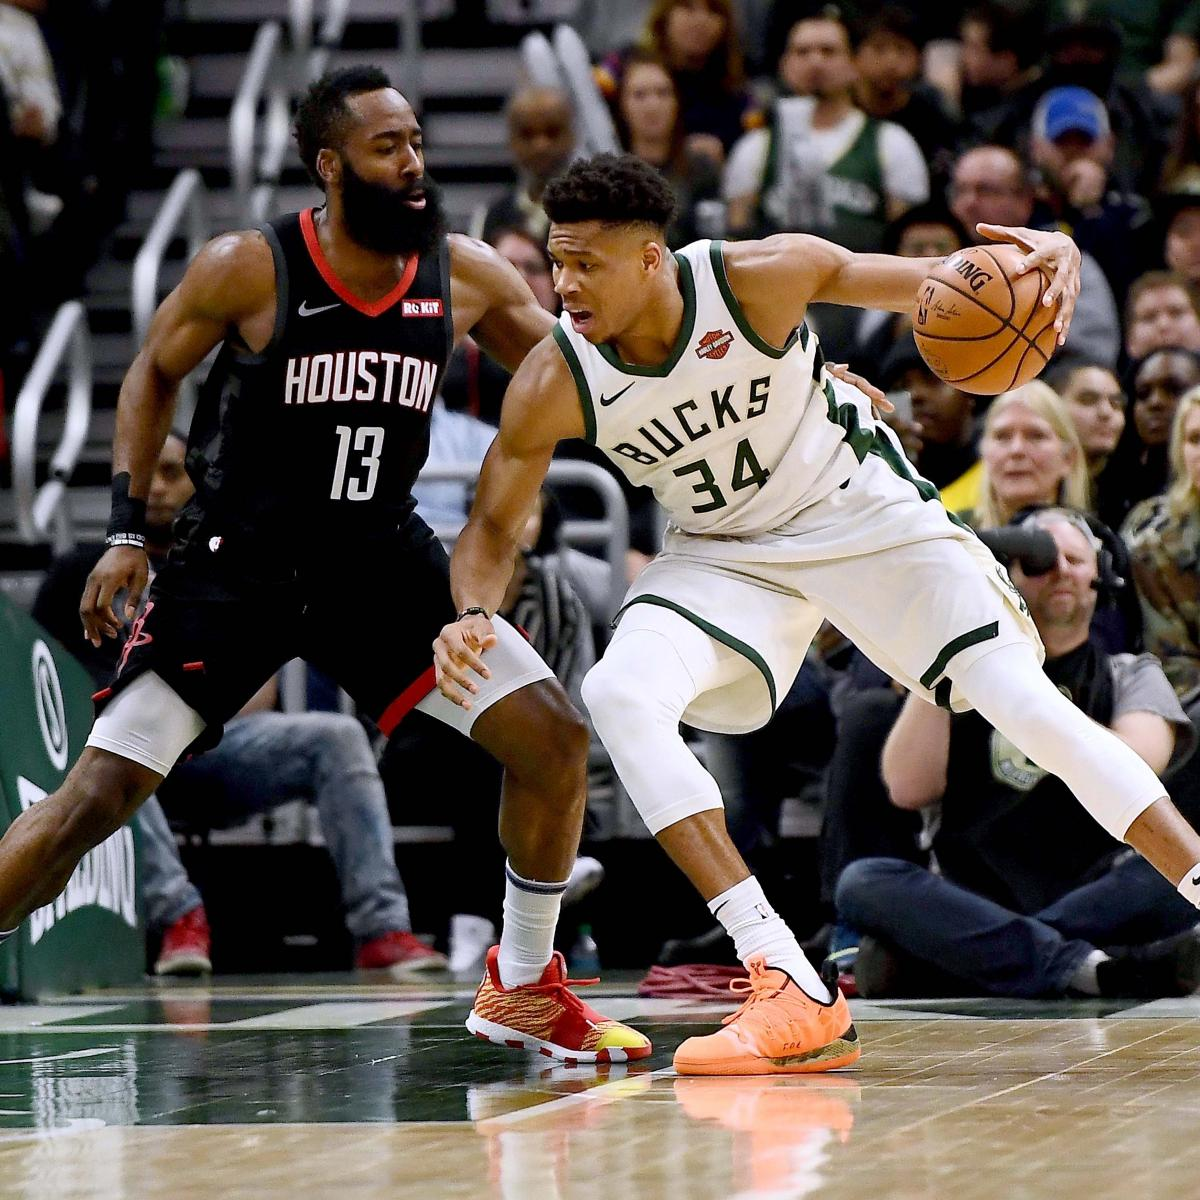 After engaging in a hotly contested MVP race, the Milwaukee Bucks' Giannis Antetokounmpo and Houston Rockets' James Harden were the only unanimous selections for the 2018-19 All- NBA team...